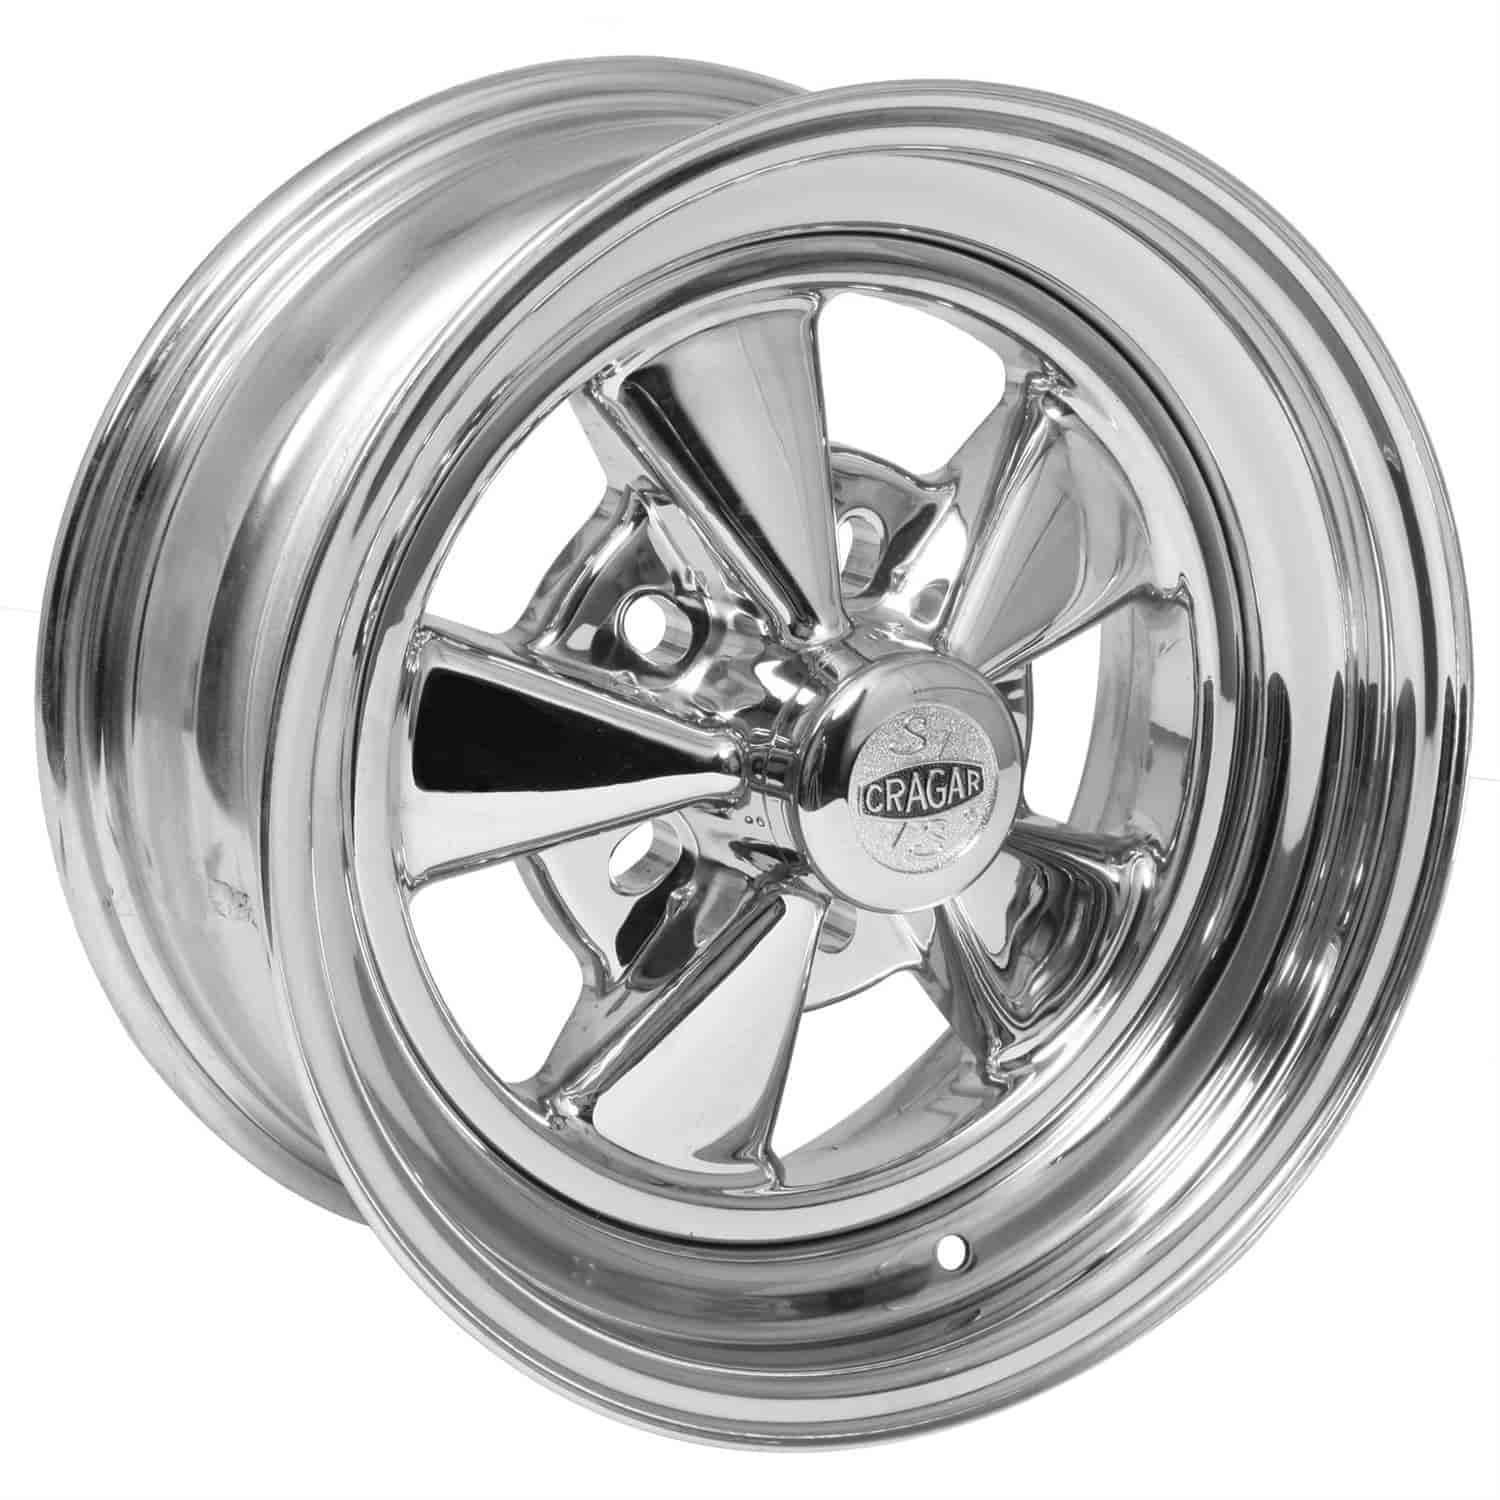 Cragar 61715 - Cragar 08/61 Series S/S Super Sport Wheels